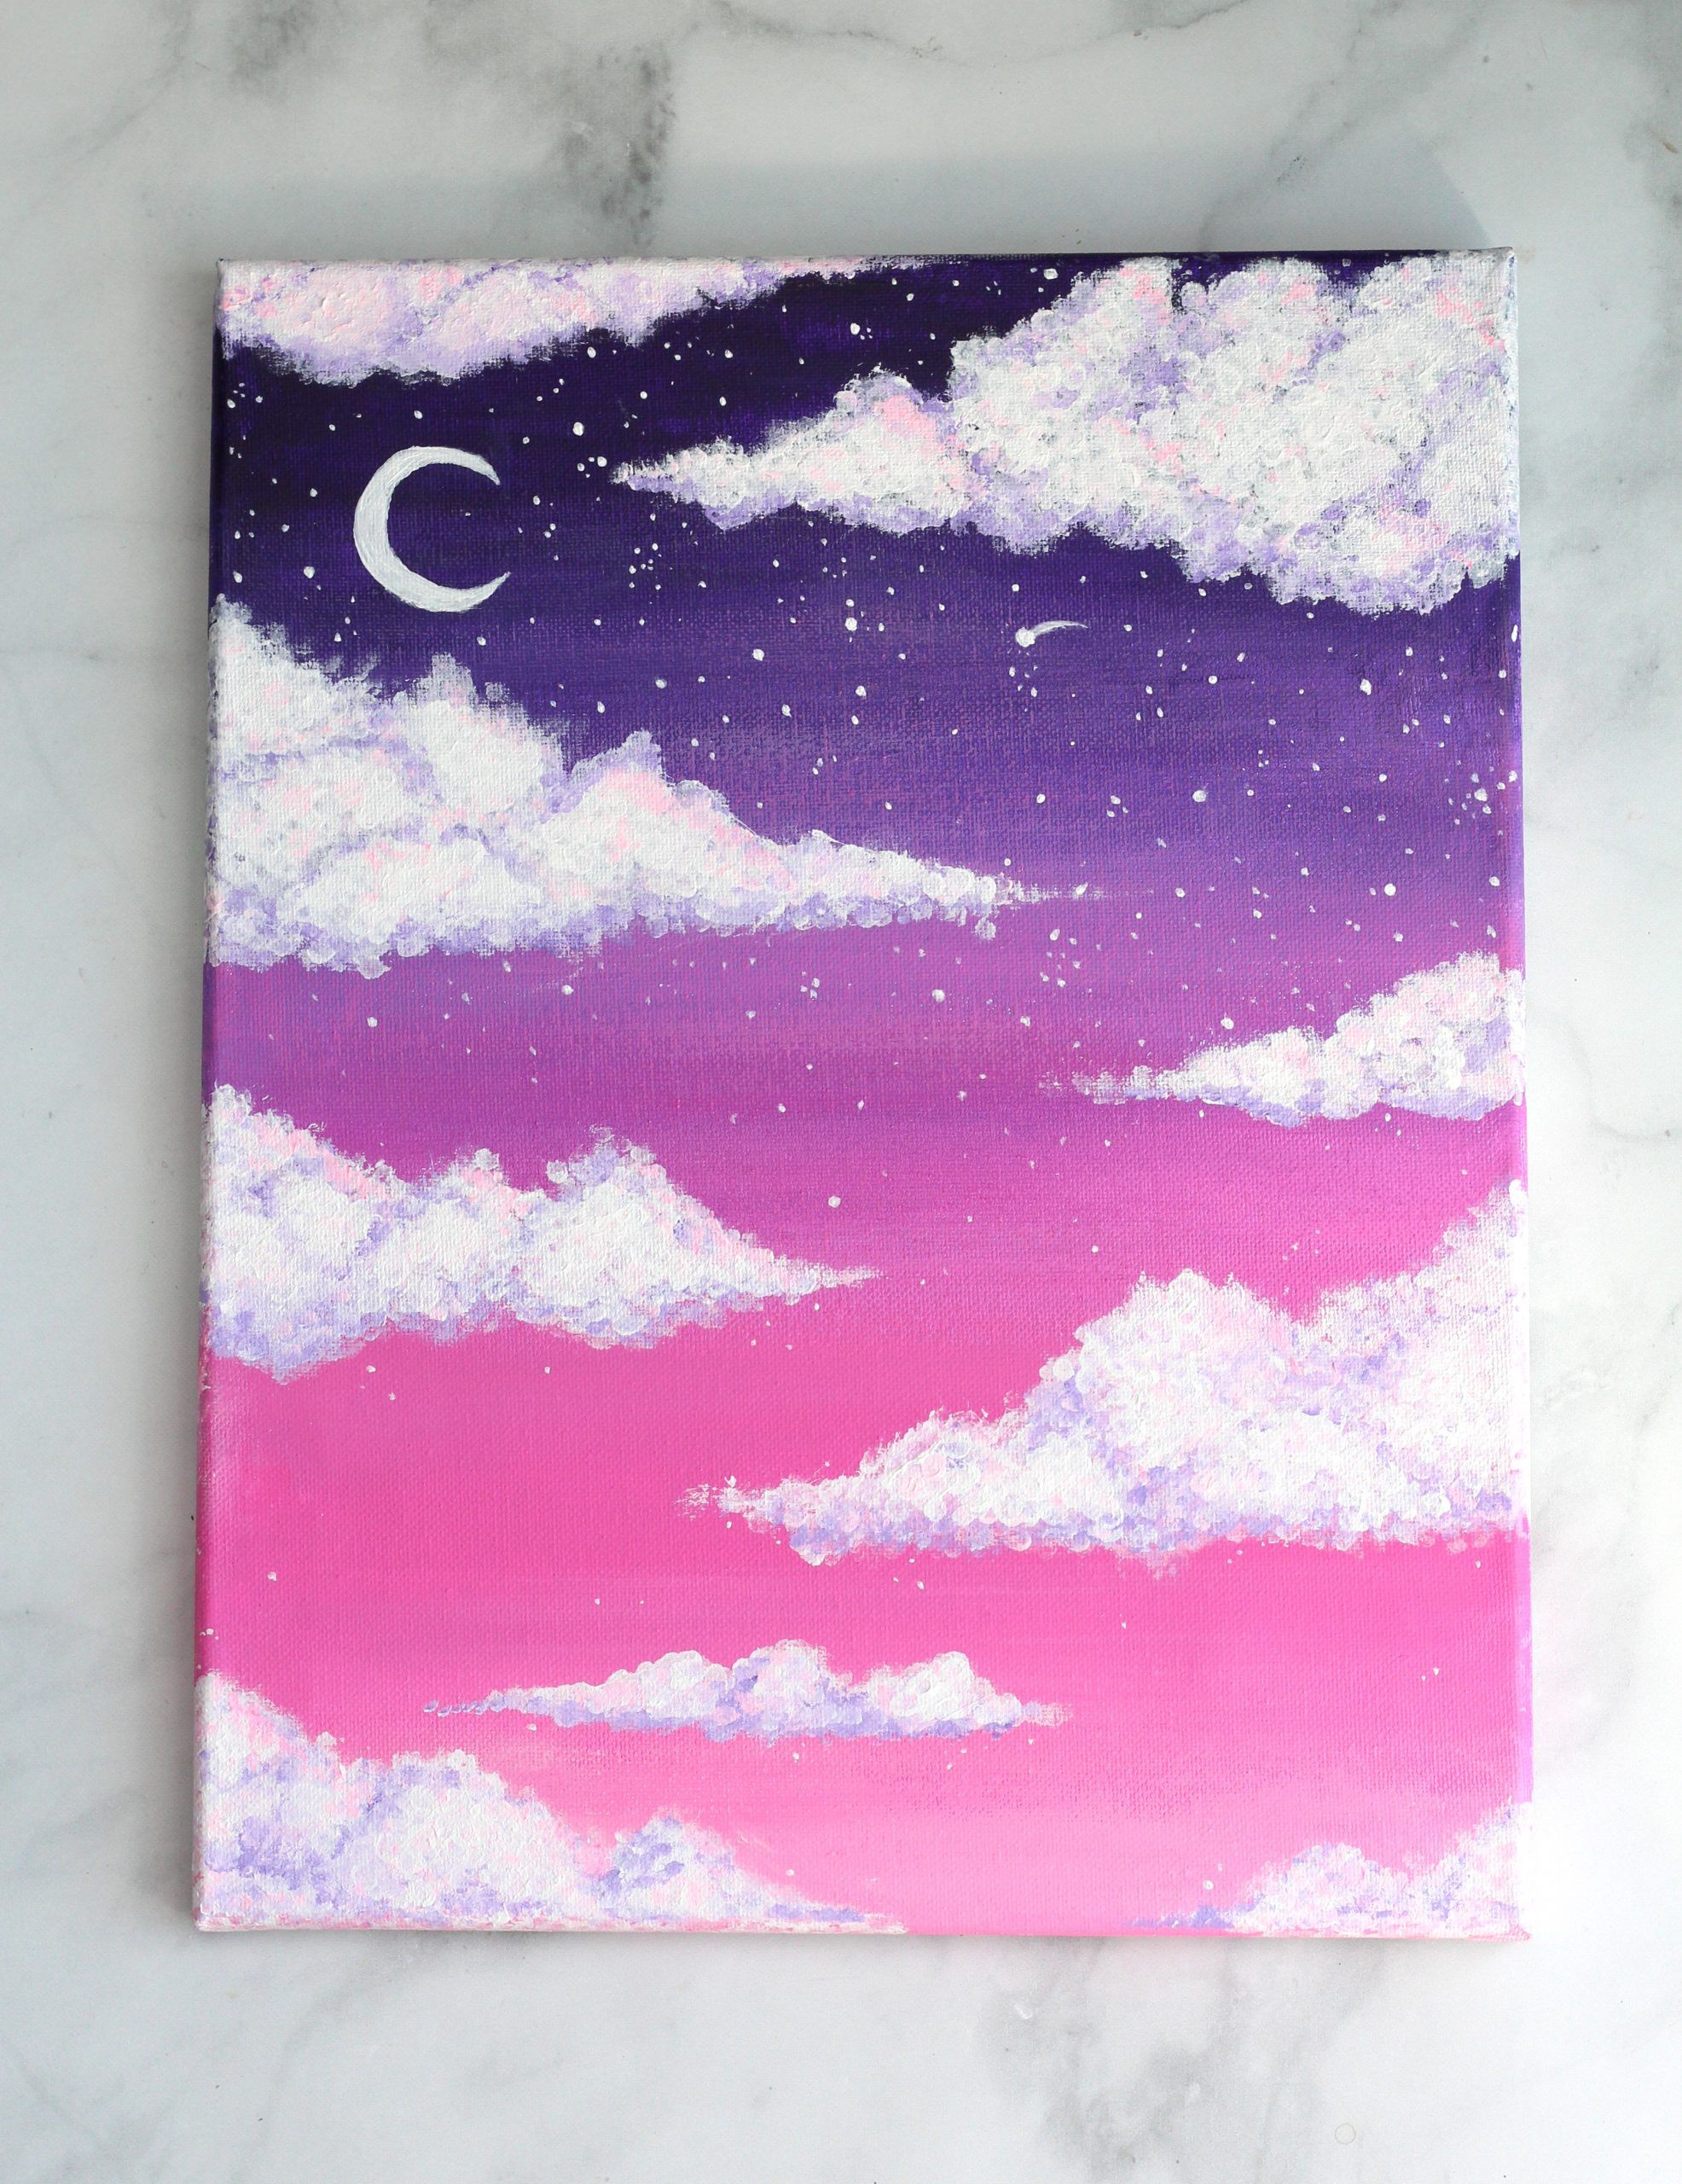 How To Paint Clouds With Acrylic The Easy Way Feeling Nifty Small Canvas Art Diy Painting